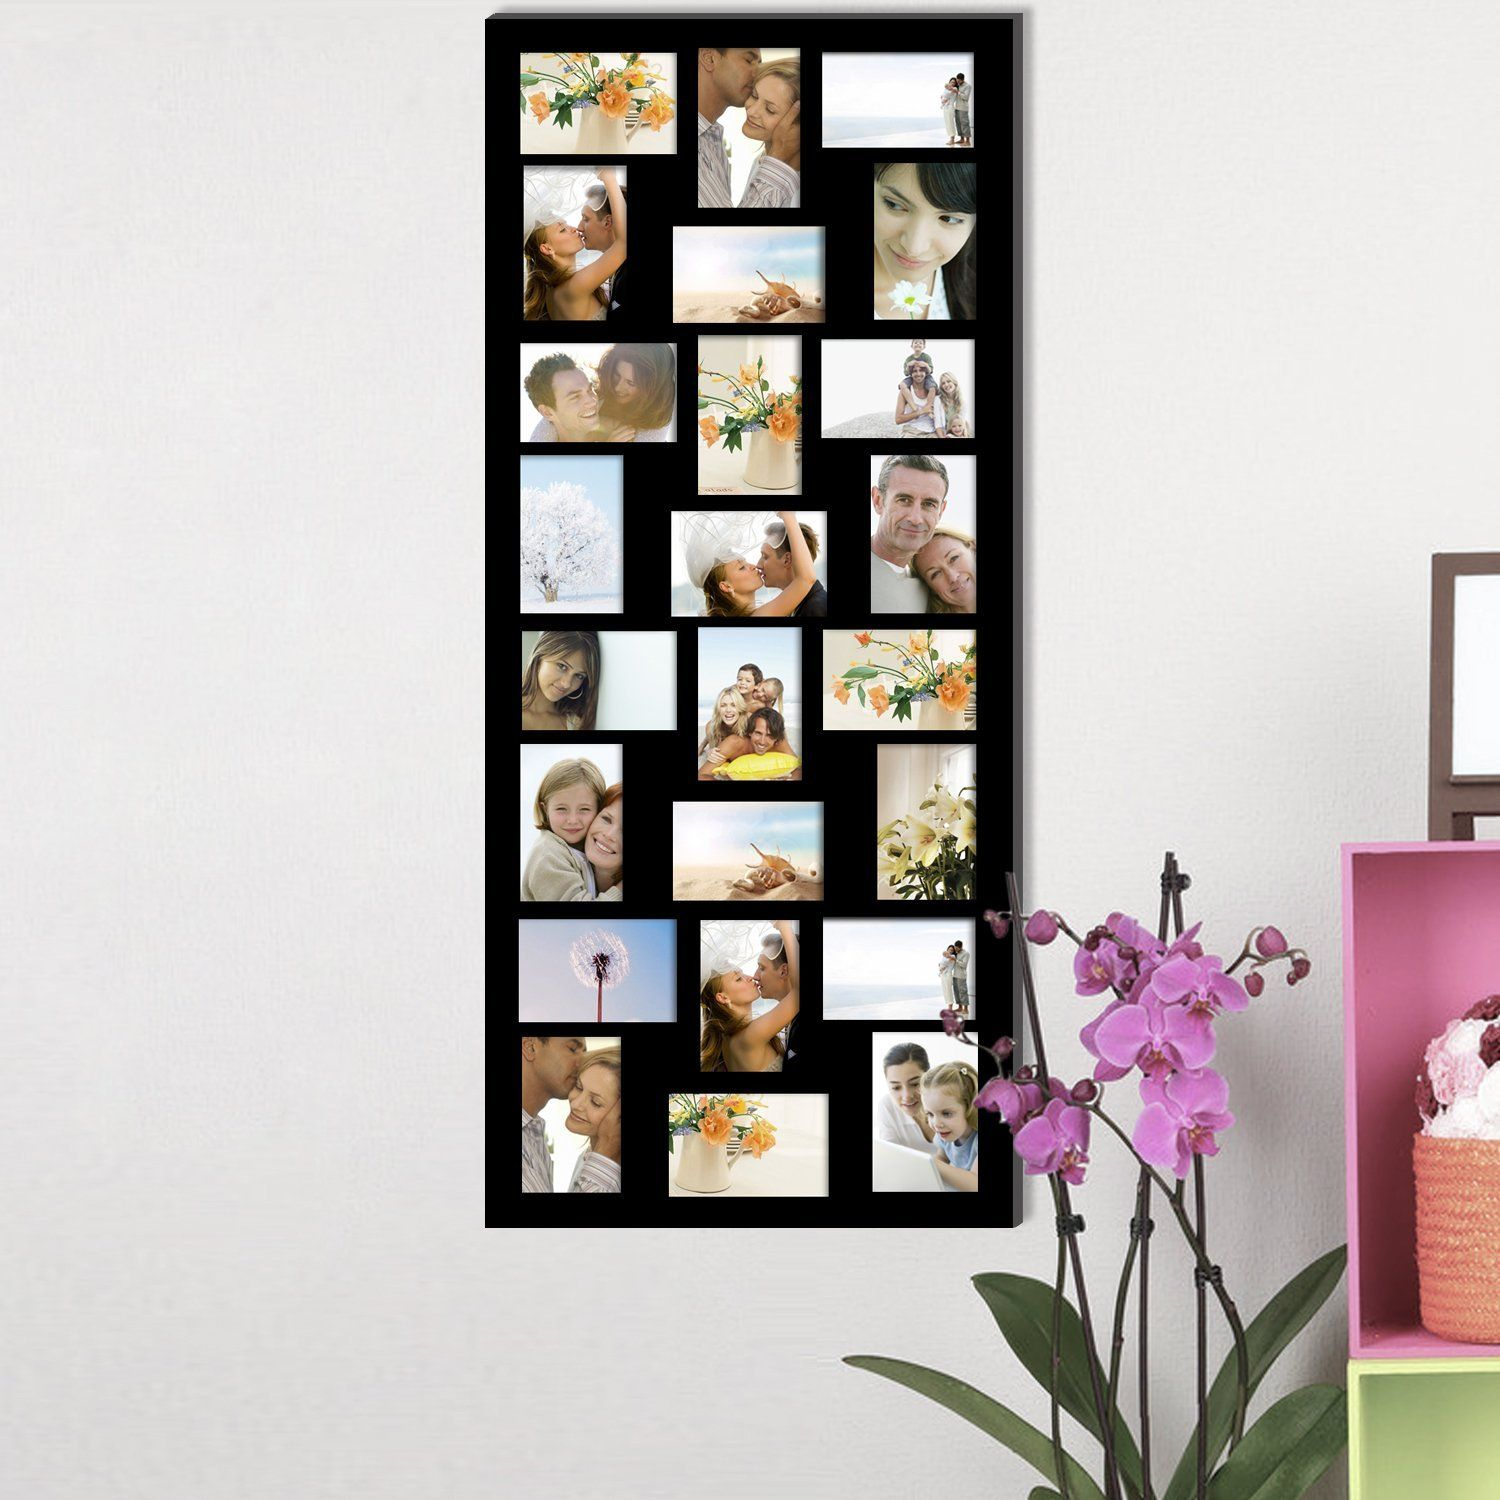 Amazon Com Adeco Pf9107 24 Openings 4x6 6x4 Collage Picture Frame Wood Photo Collage Decoration Black For Wa Frame Picture Collage Wood Wall Hanging